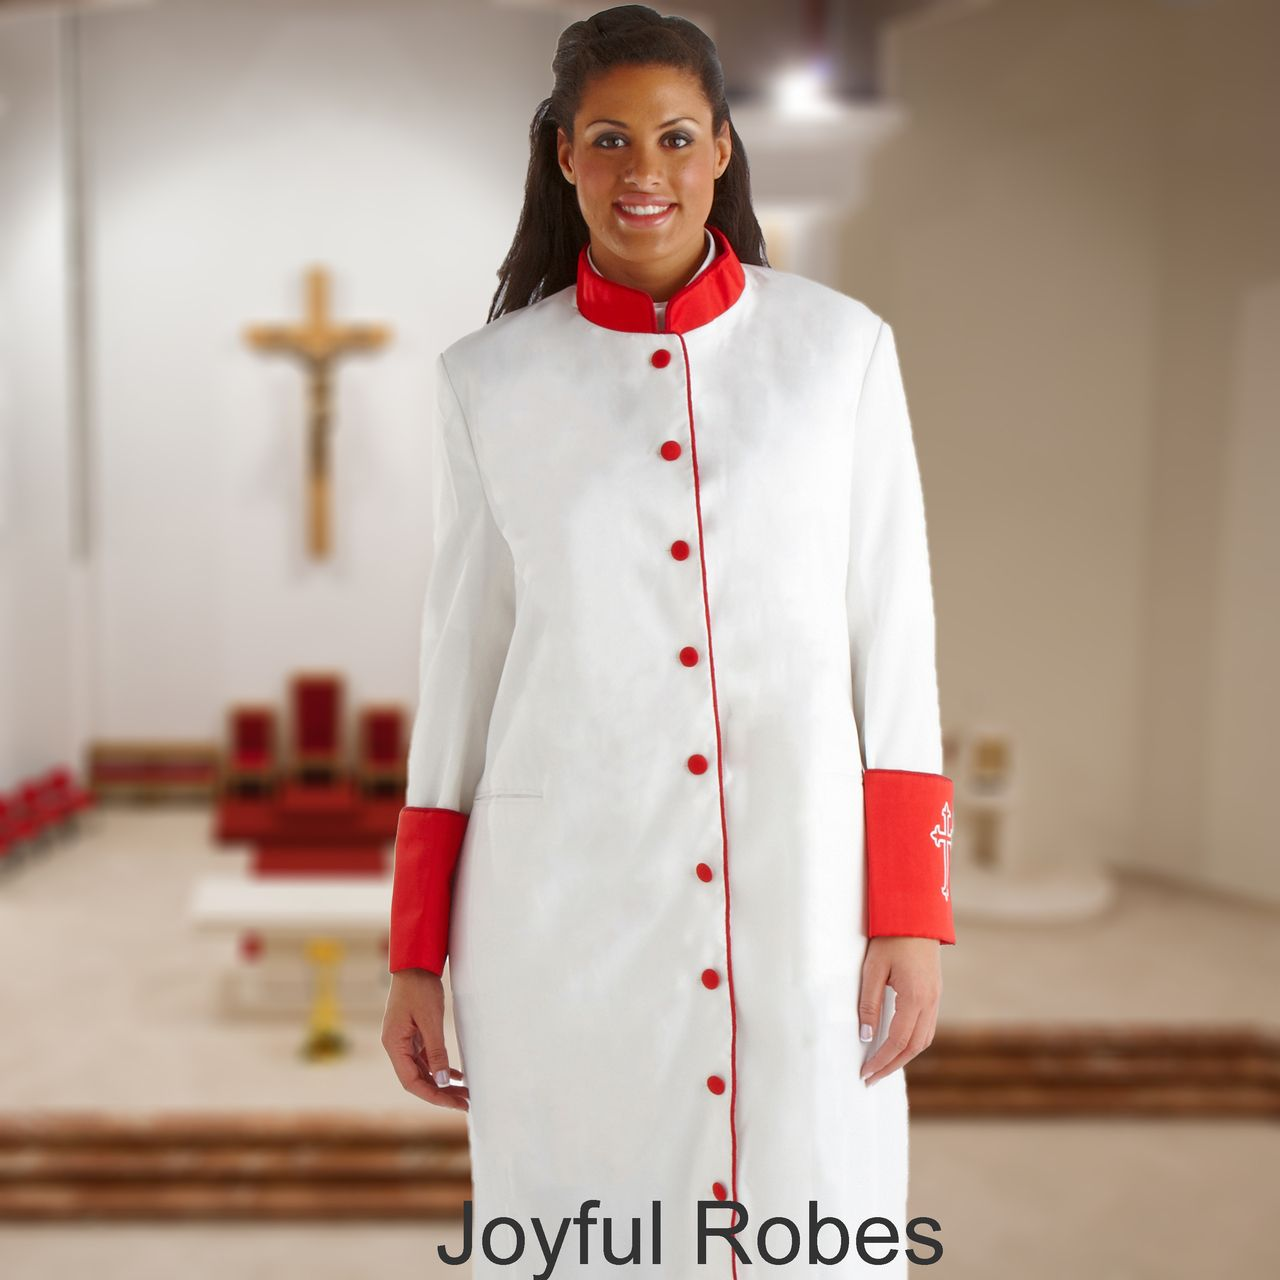 311 W. Women's Clergy/Pastor Robe - White/Red Cuff